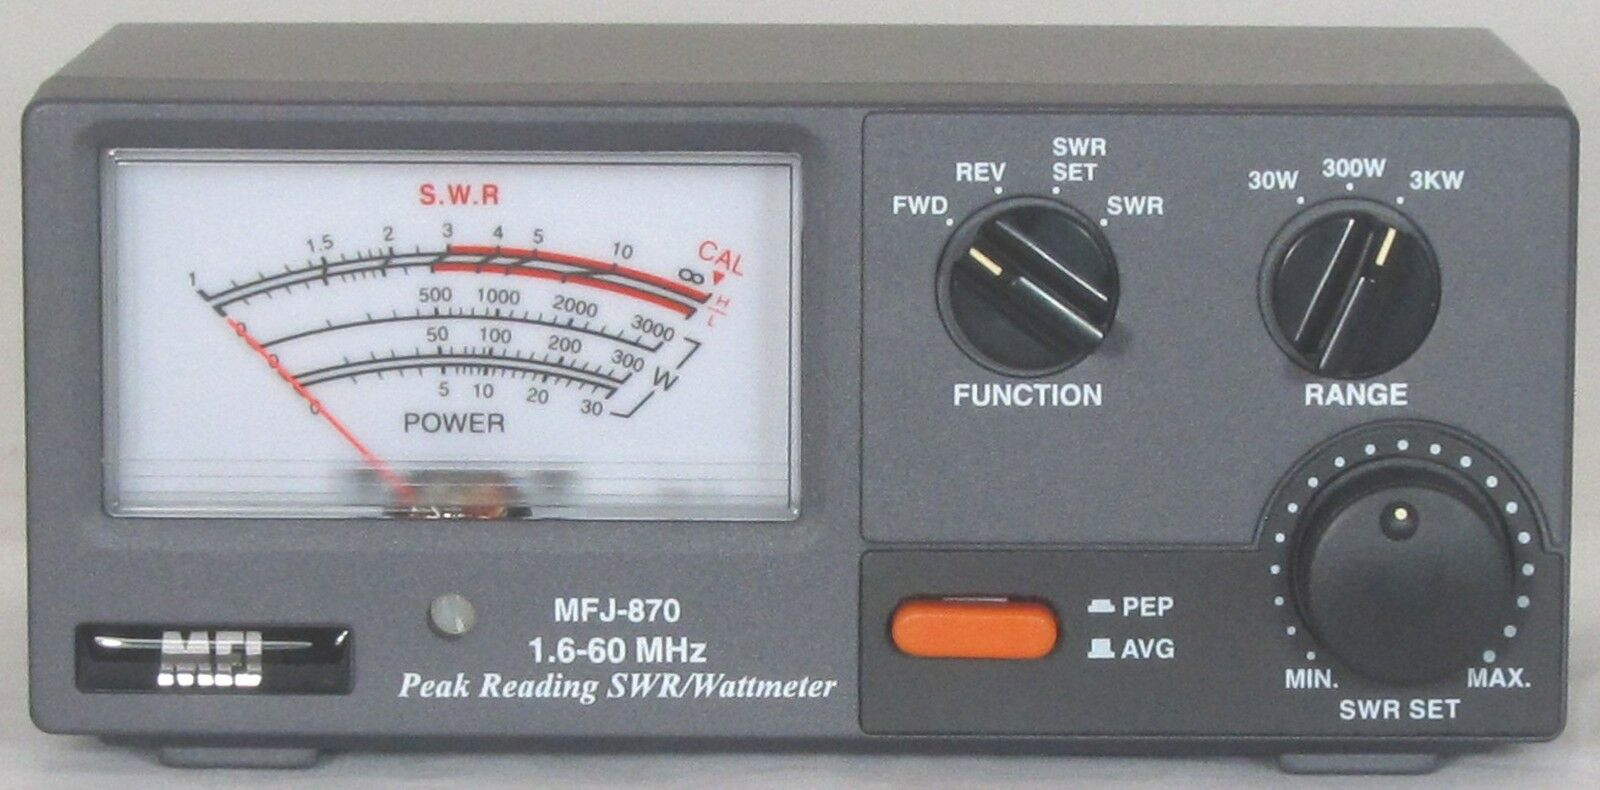 MFJ-870 SWR meter, 1.8-60MHz, 30/300/3000W. Buy it now for 96.95